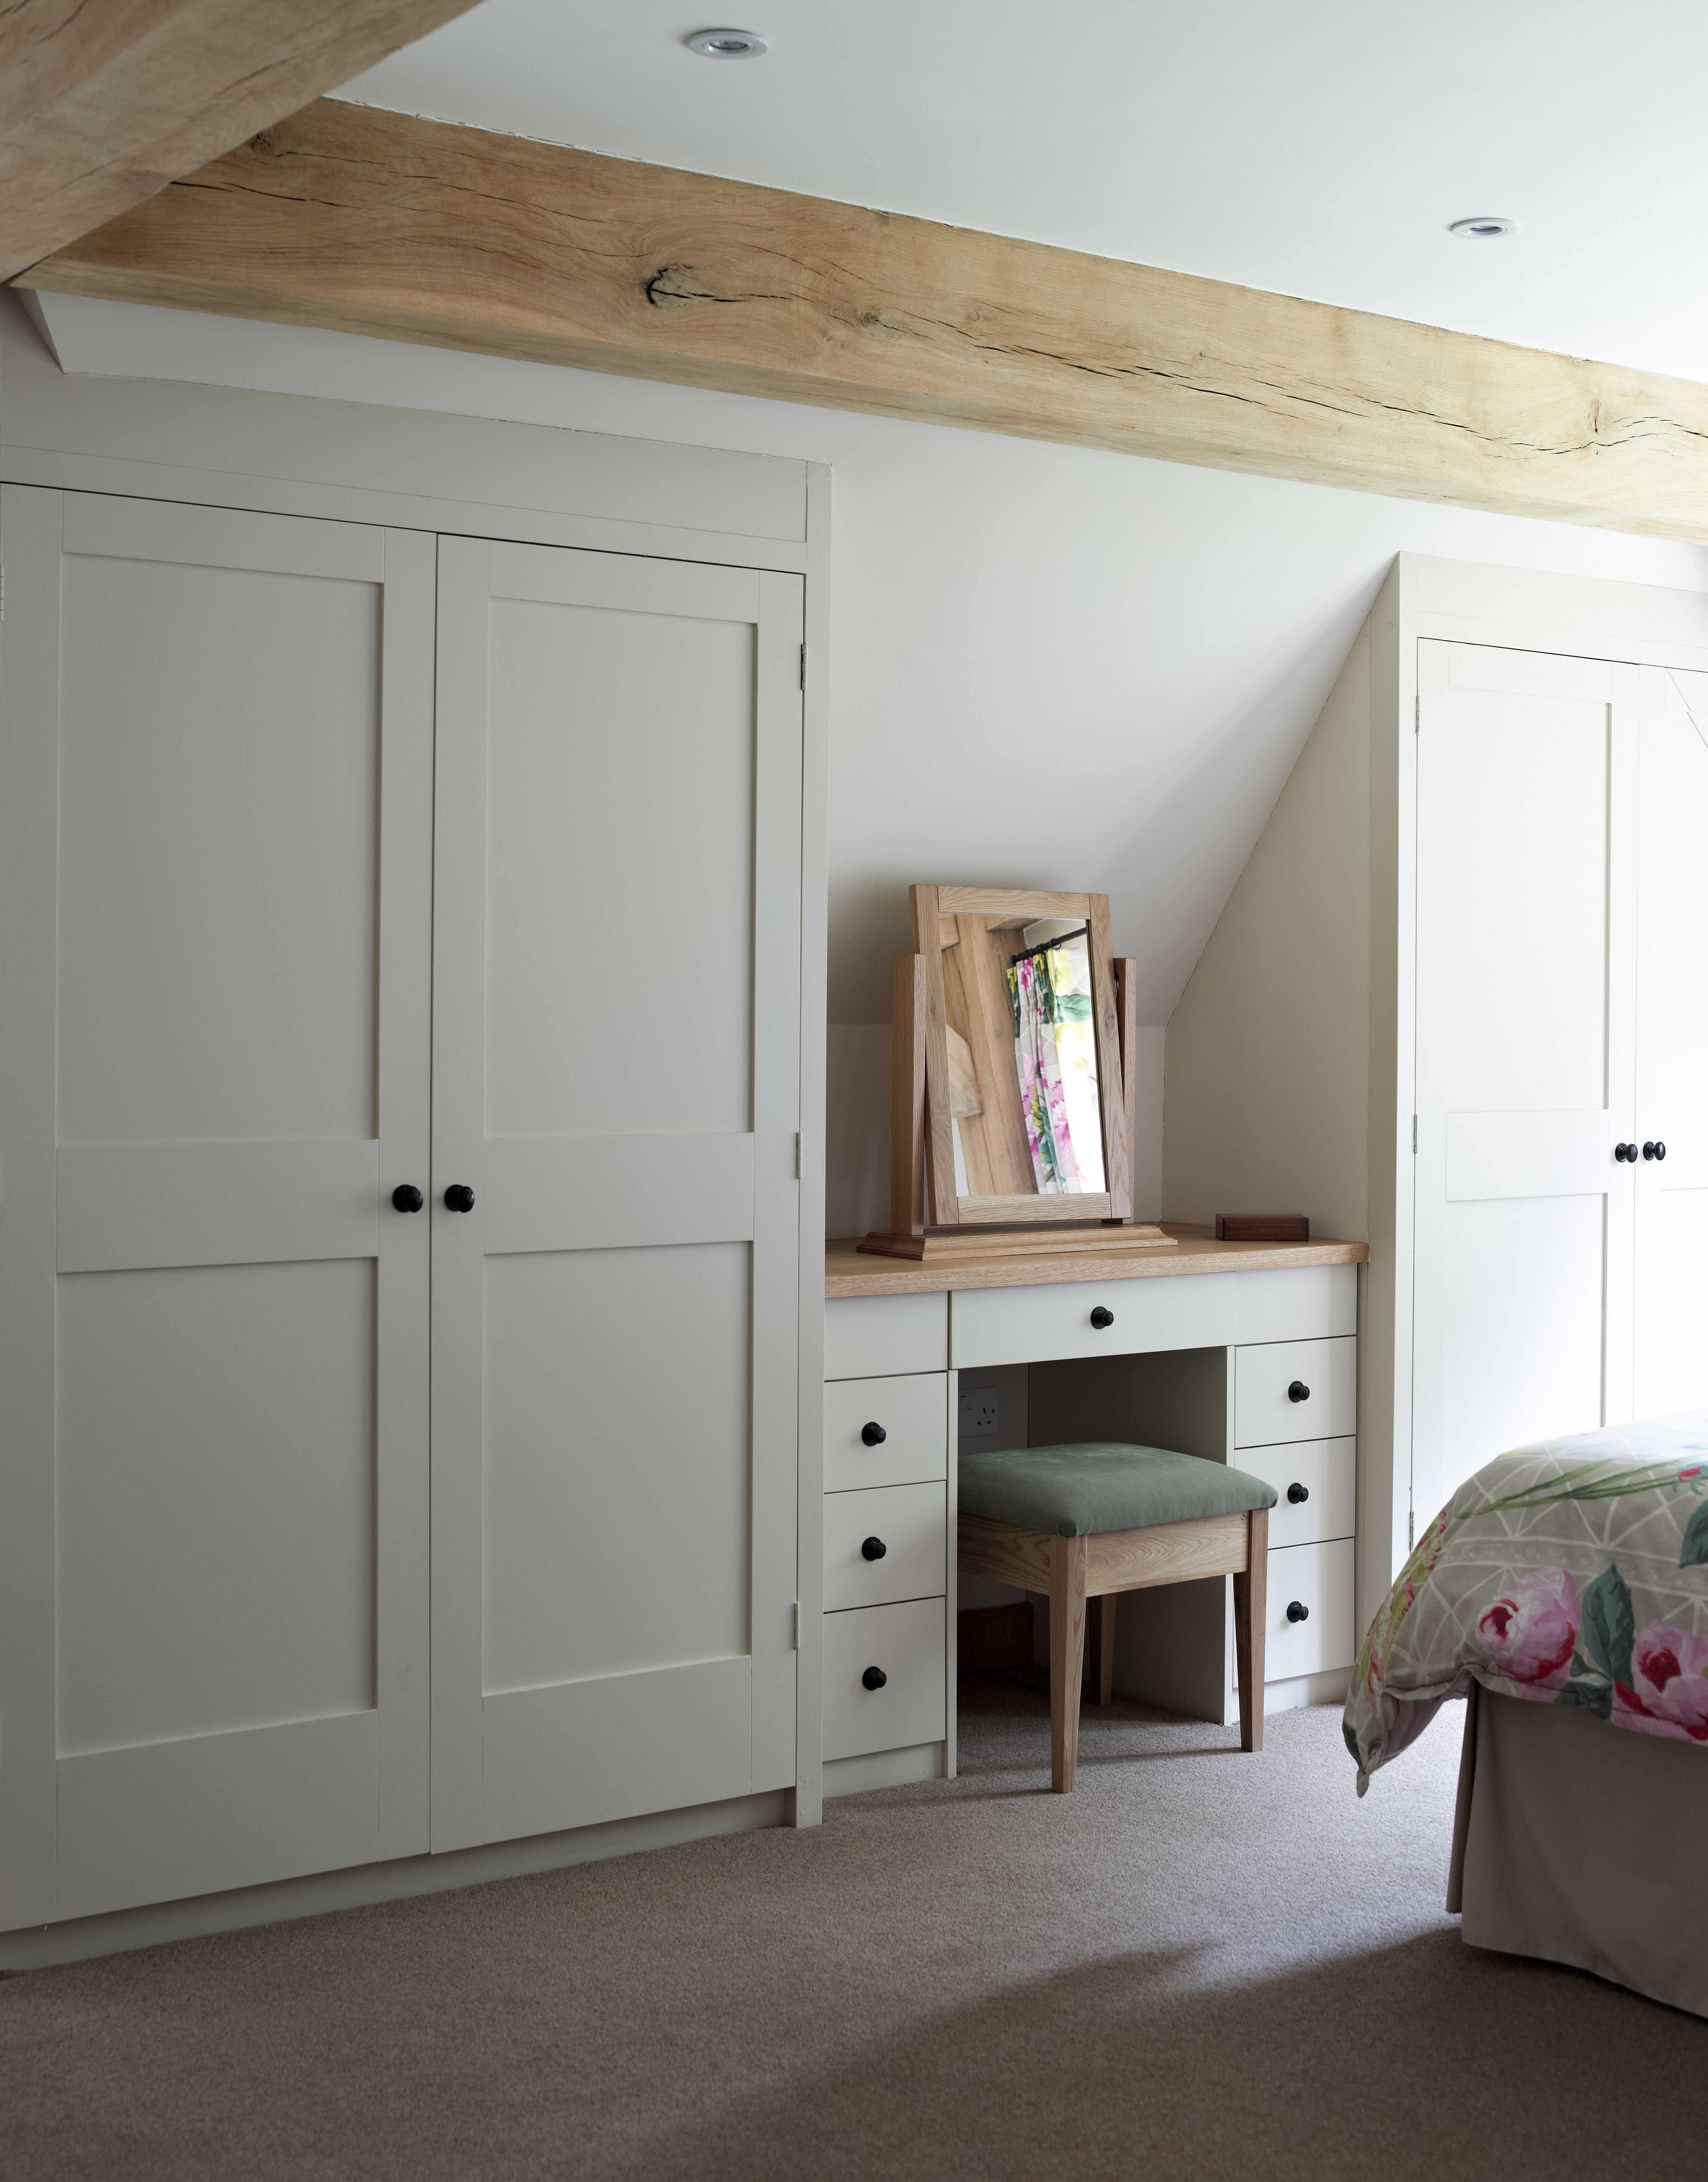 Loft bedroom wardrobe ideas  fitted wardrobes  Projects to Try  Pinterest  Fitted wardrobes